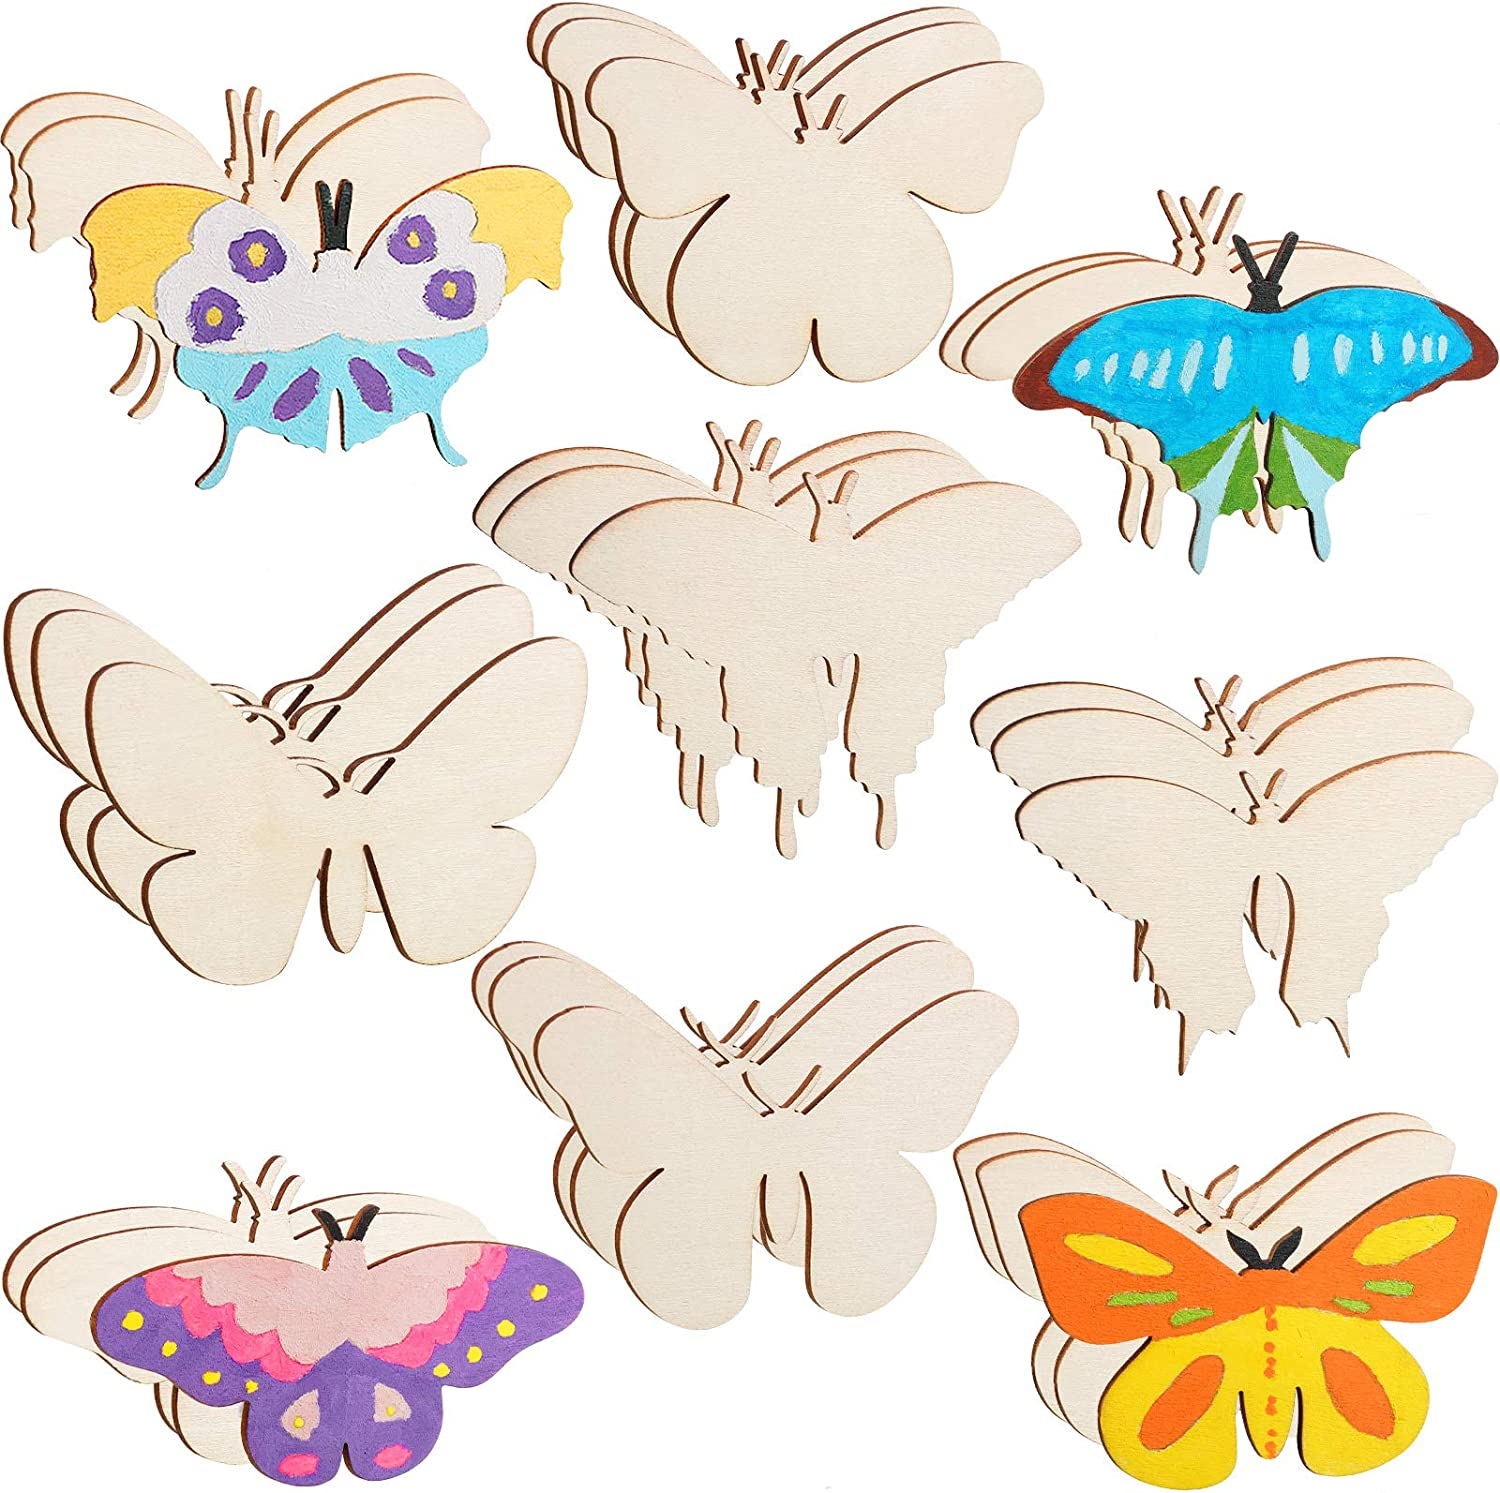 27 Pieces Wood Butterfly Crafts Butterfly Unfinished Wood Cutouts Blank Butterfly Wooden Paint Crafts for Kids Home Decoration Craft Project, 9 Styles